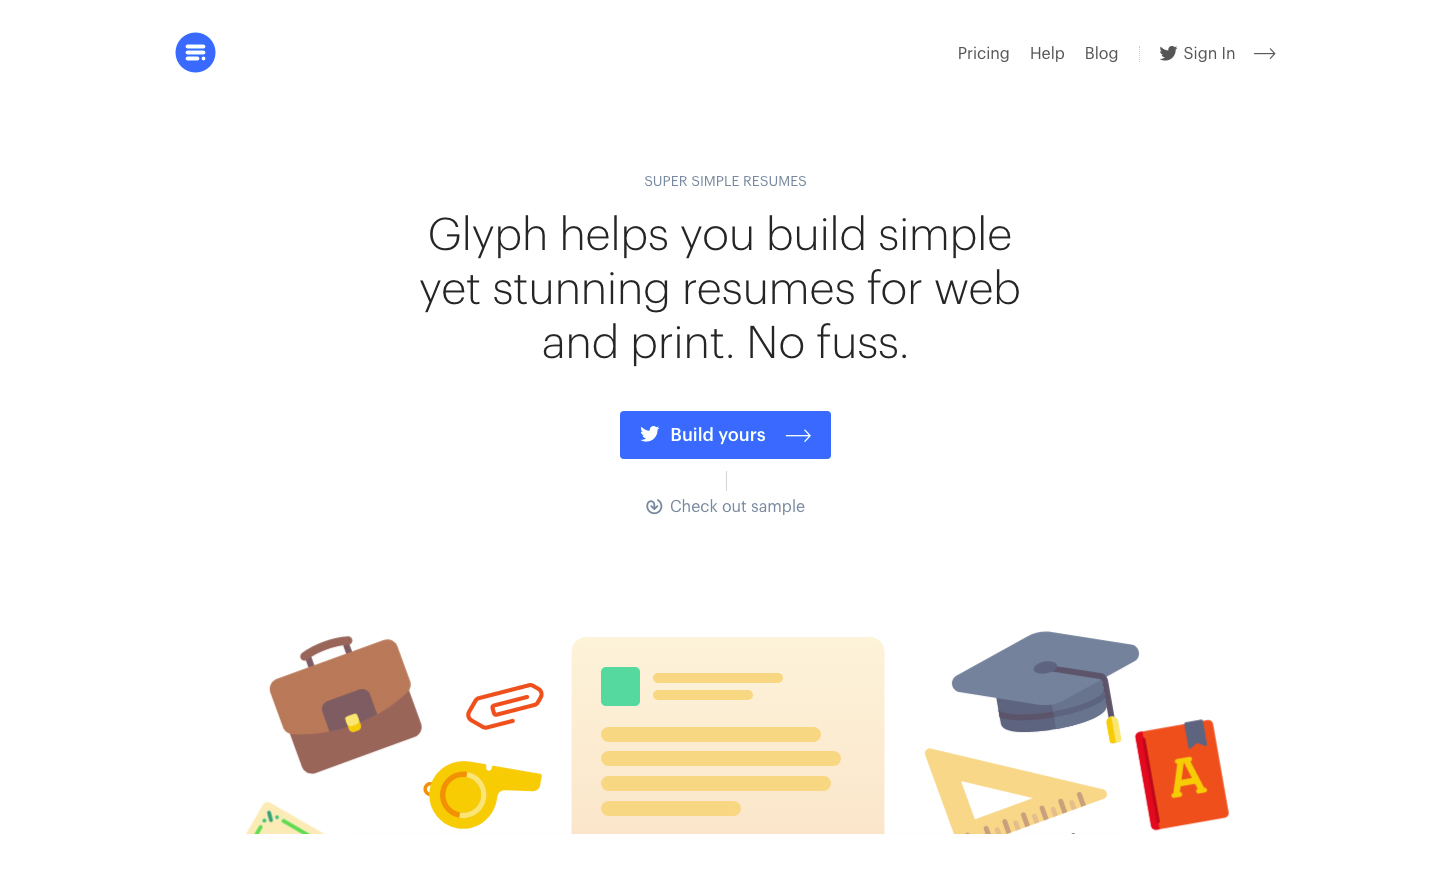 Glyph page is an example of good UX